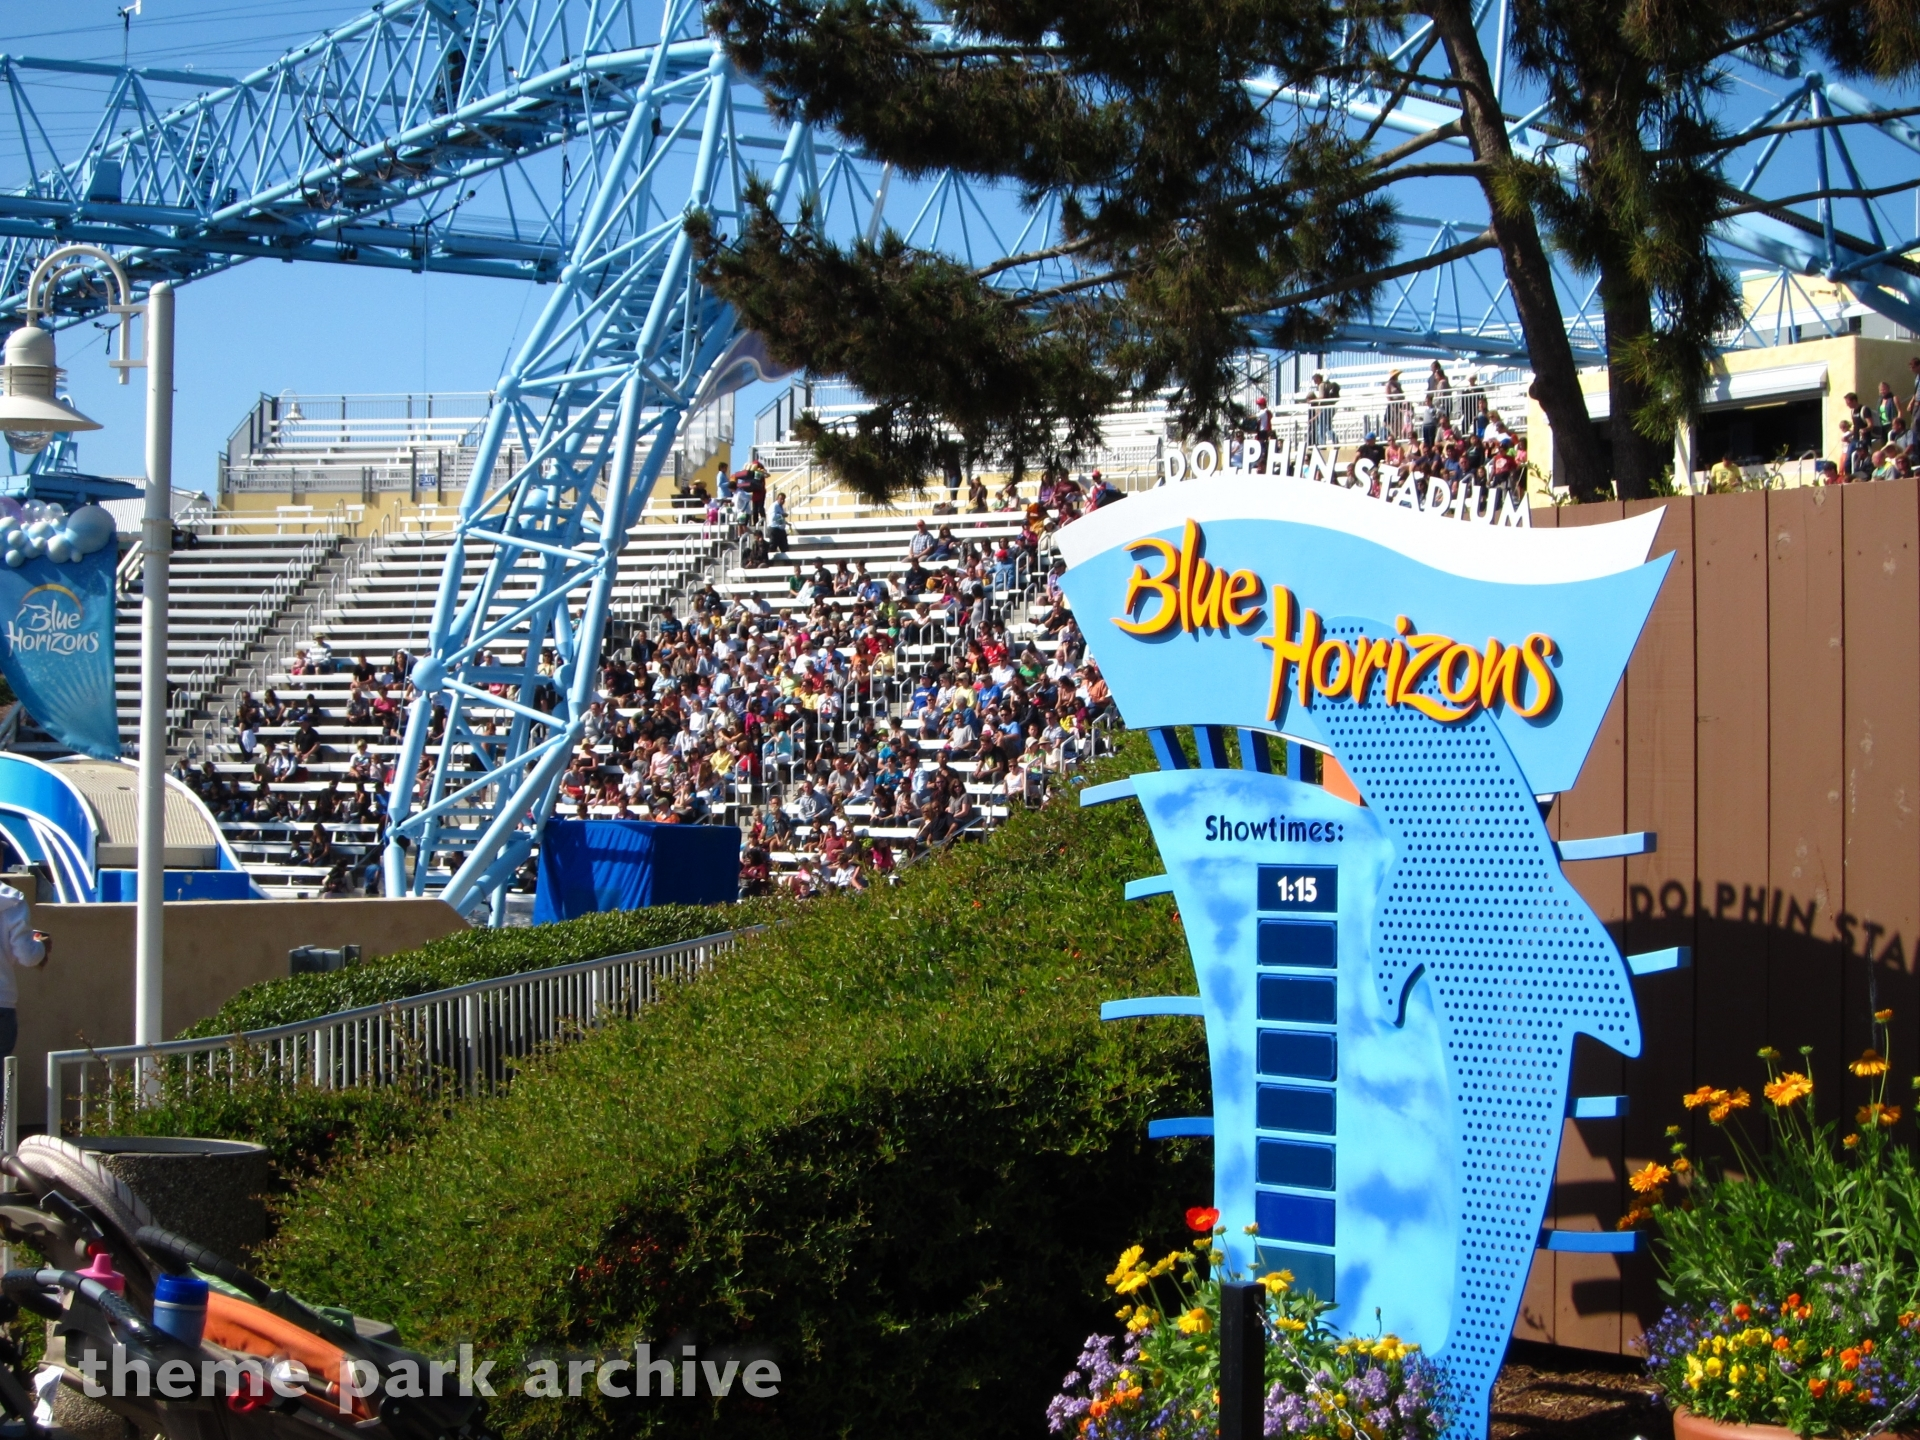 Blue Horizons at Sea World San Diego